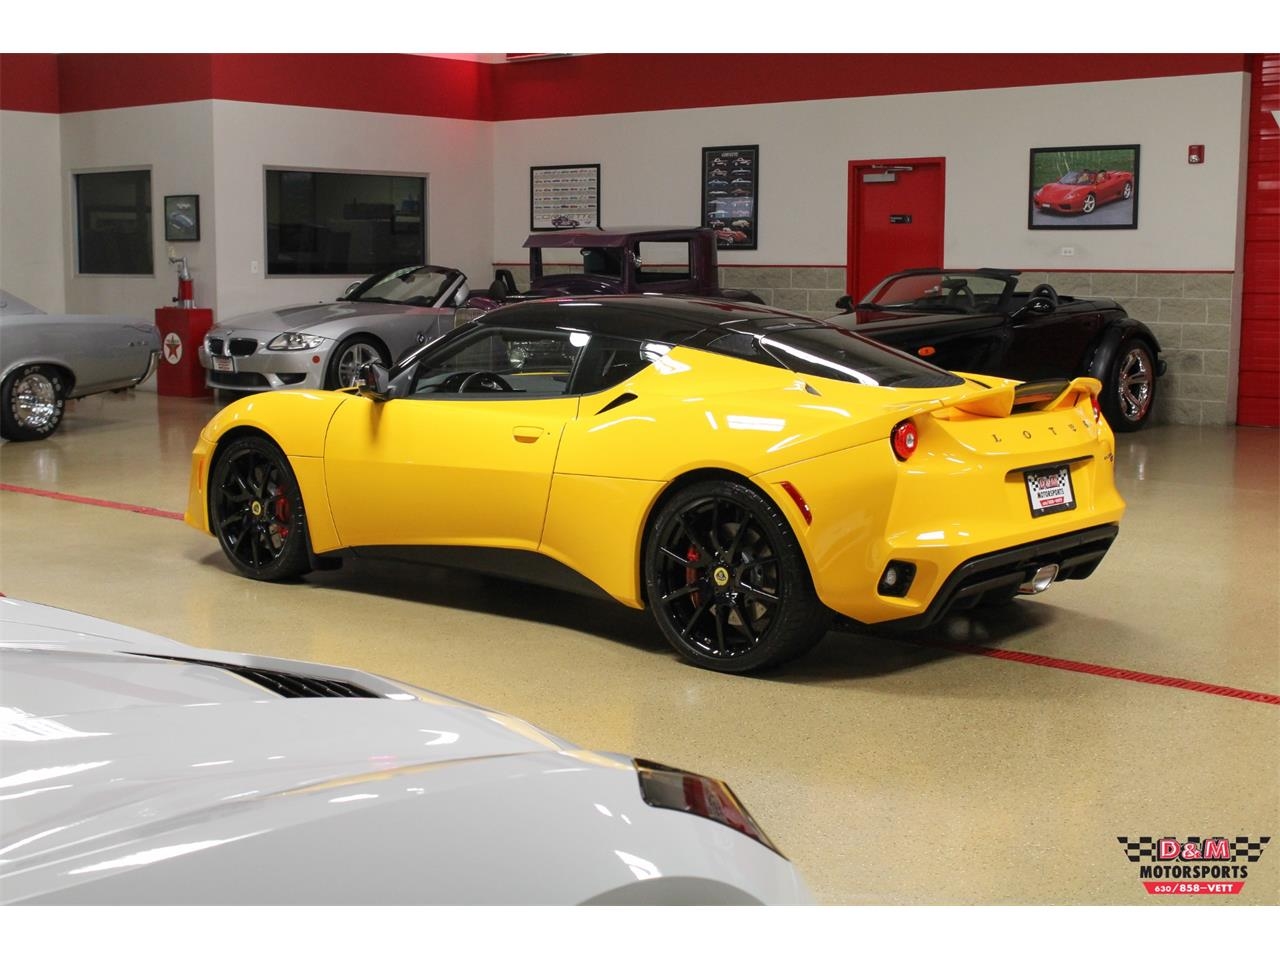 Large Picture of '17 Lotus Evora located in Illinois - $76,995.00 - OY1K